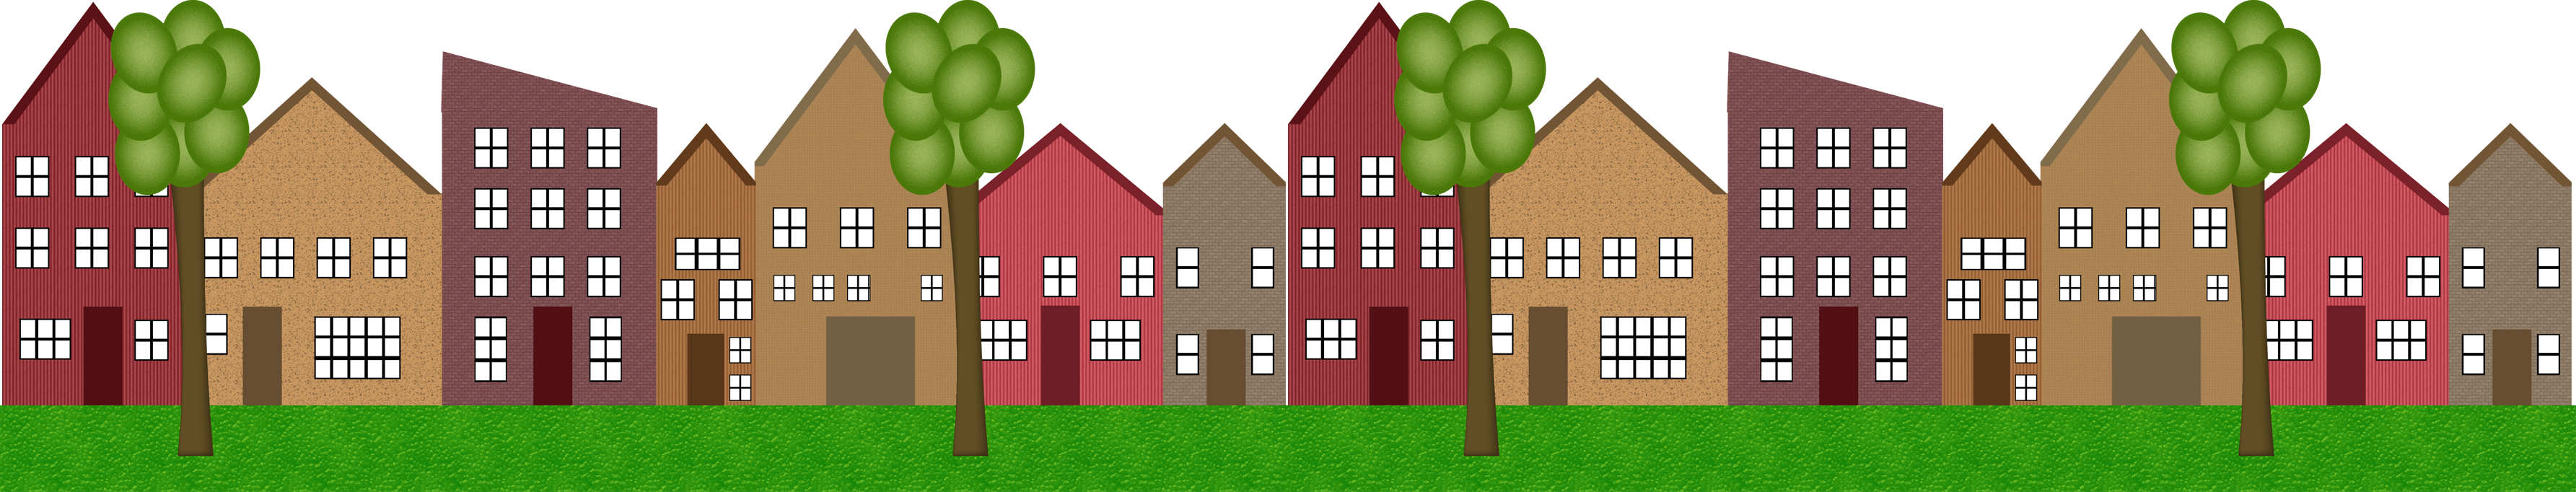 Grass clipart row. Of houses clipground png